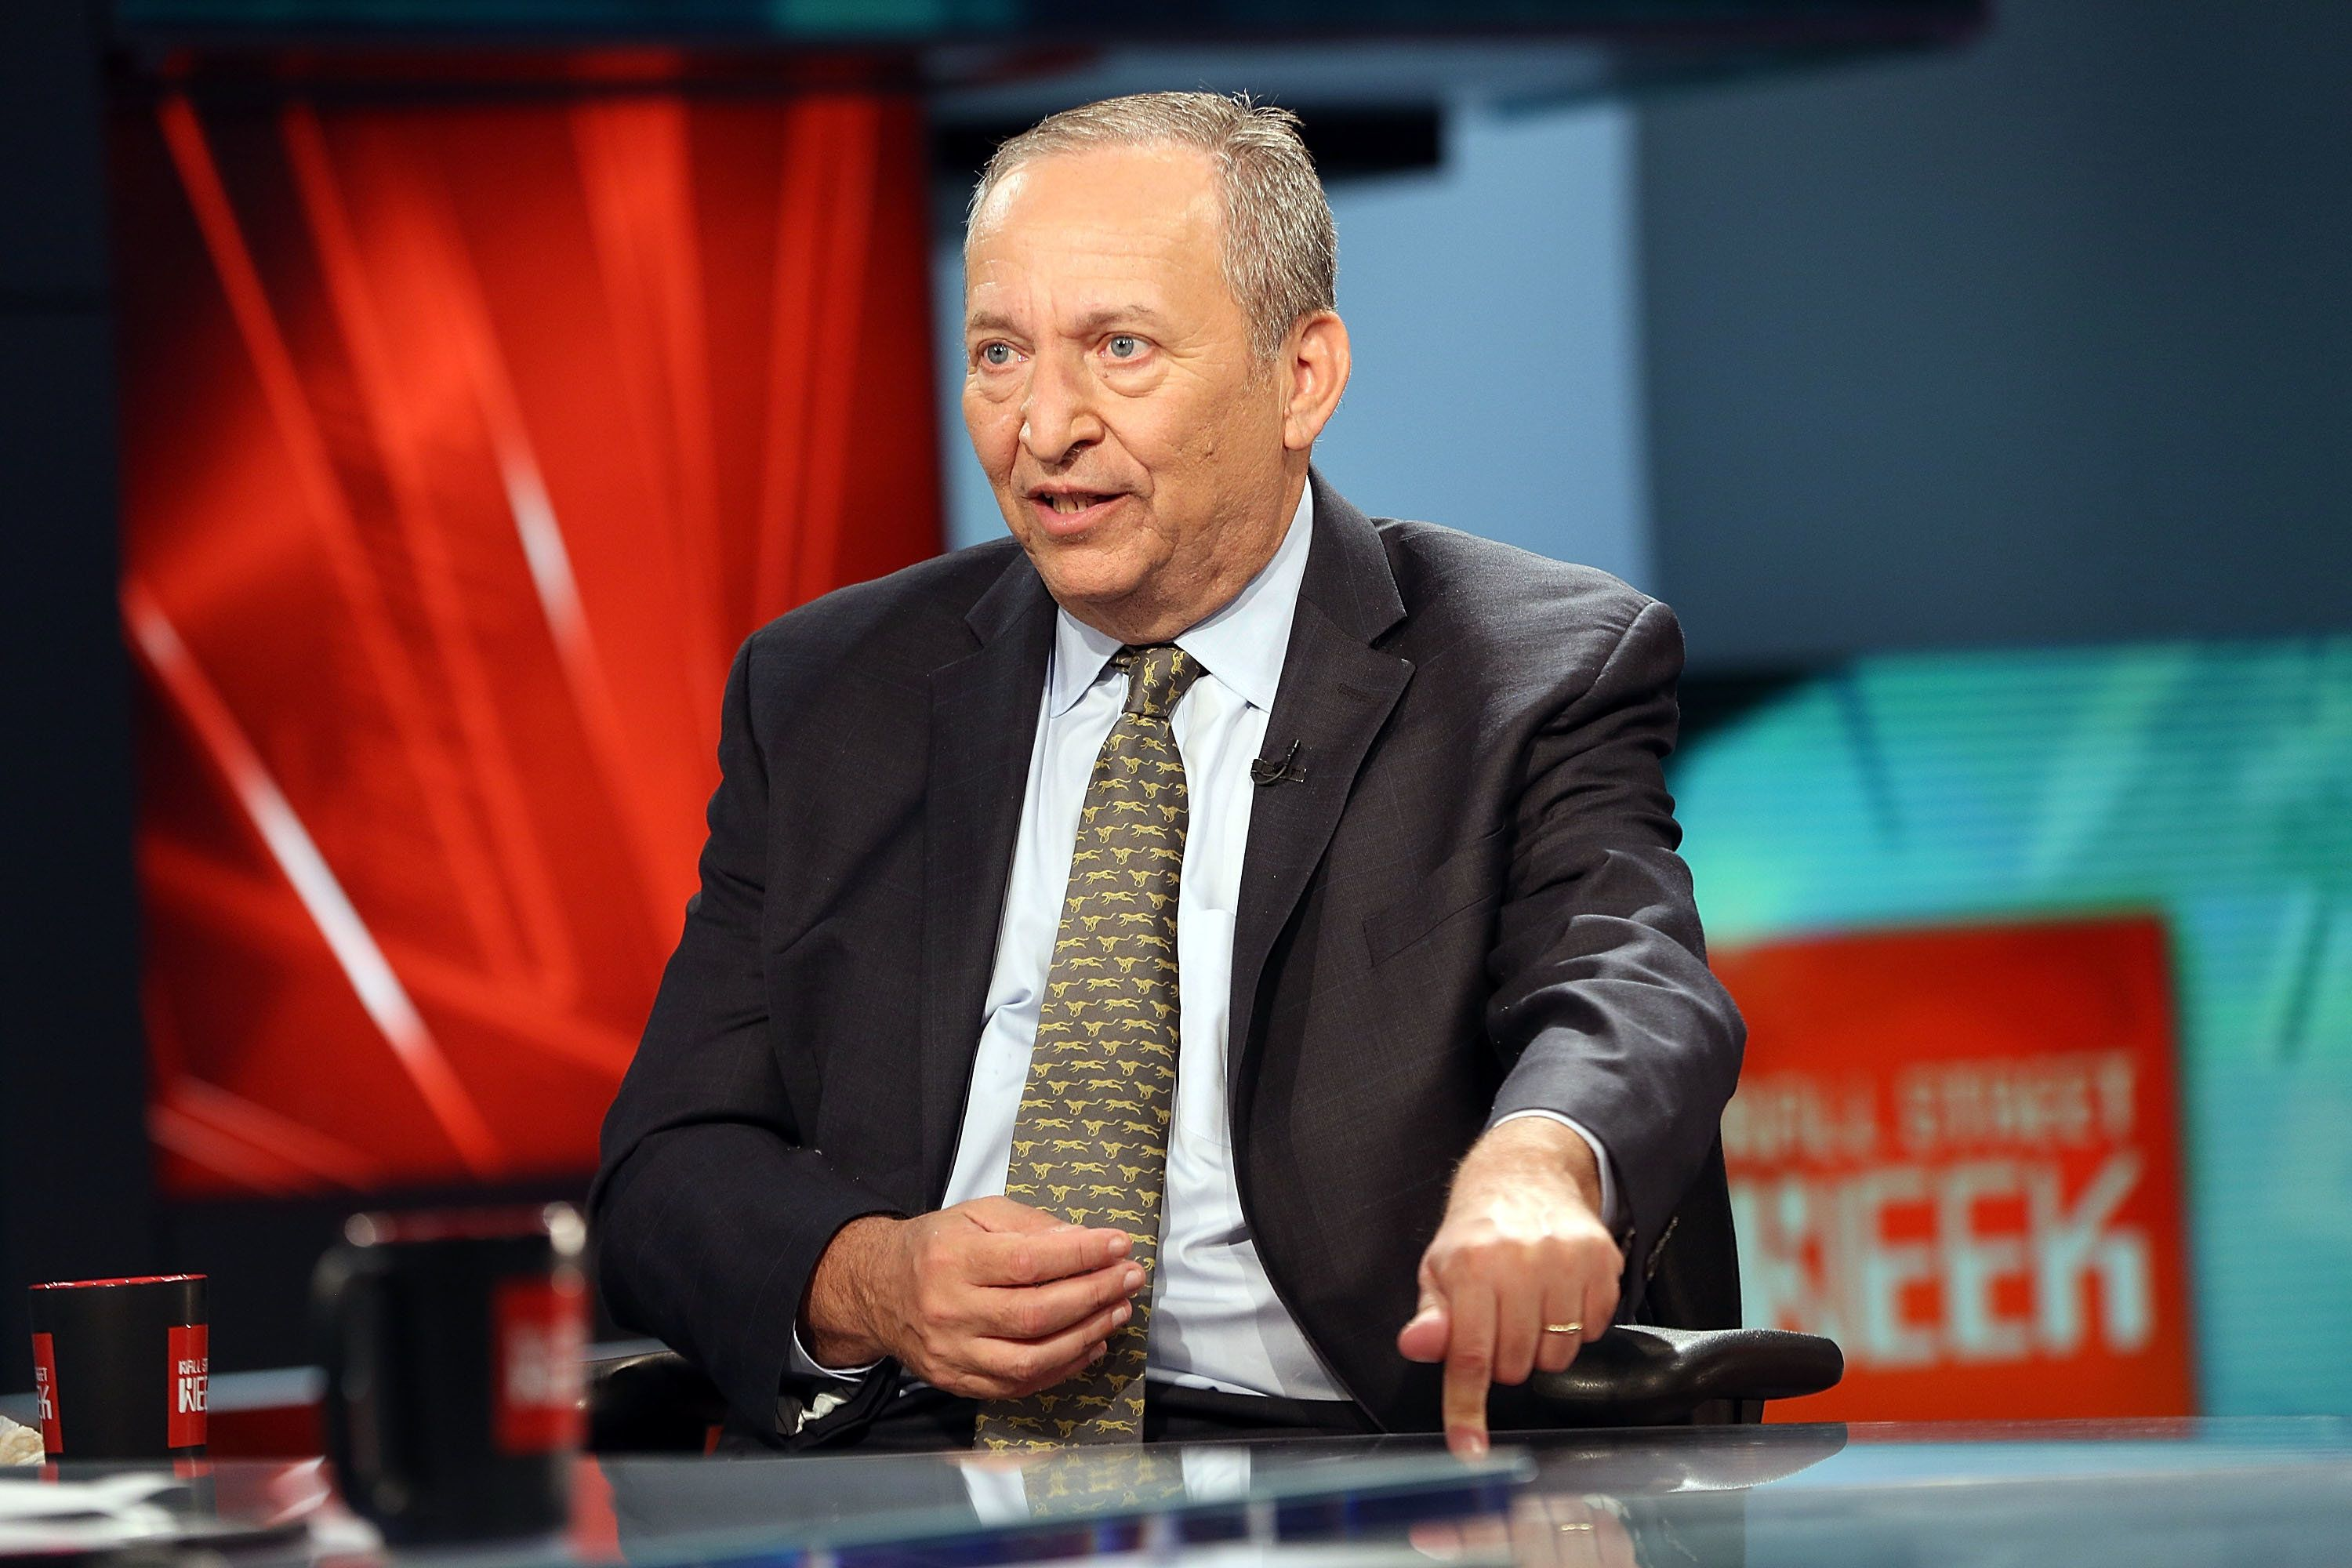 NEW YORK, NY - MAY 24:  Former Treasury Secretary & White House Economic Advisor Larry Summers is interviewed by FOX Business' Maria Bartiromo at FOX Studios on May 24, 2017 in New York City.  (Photo by Robin Marchant/Getty Images)